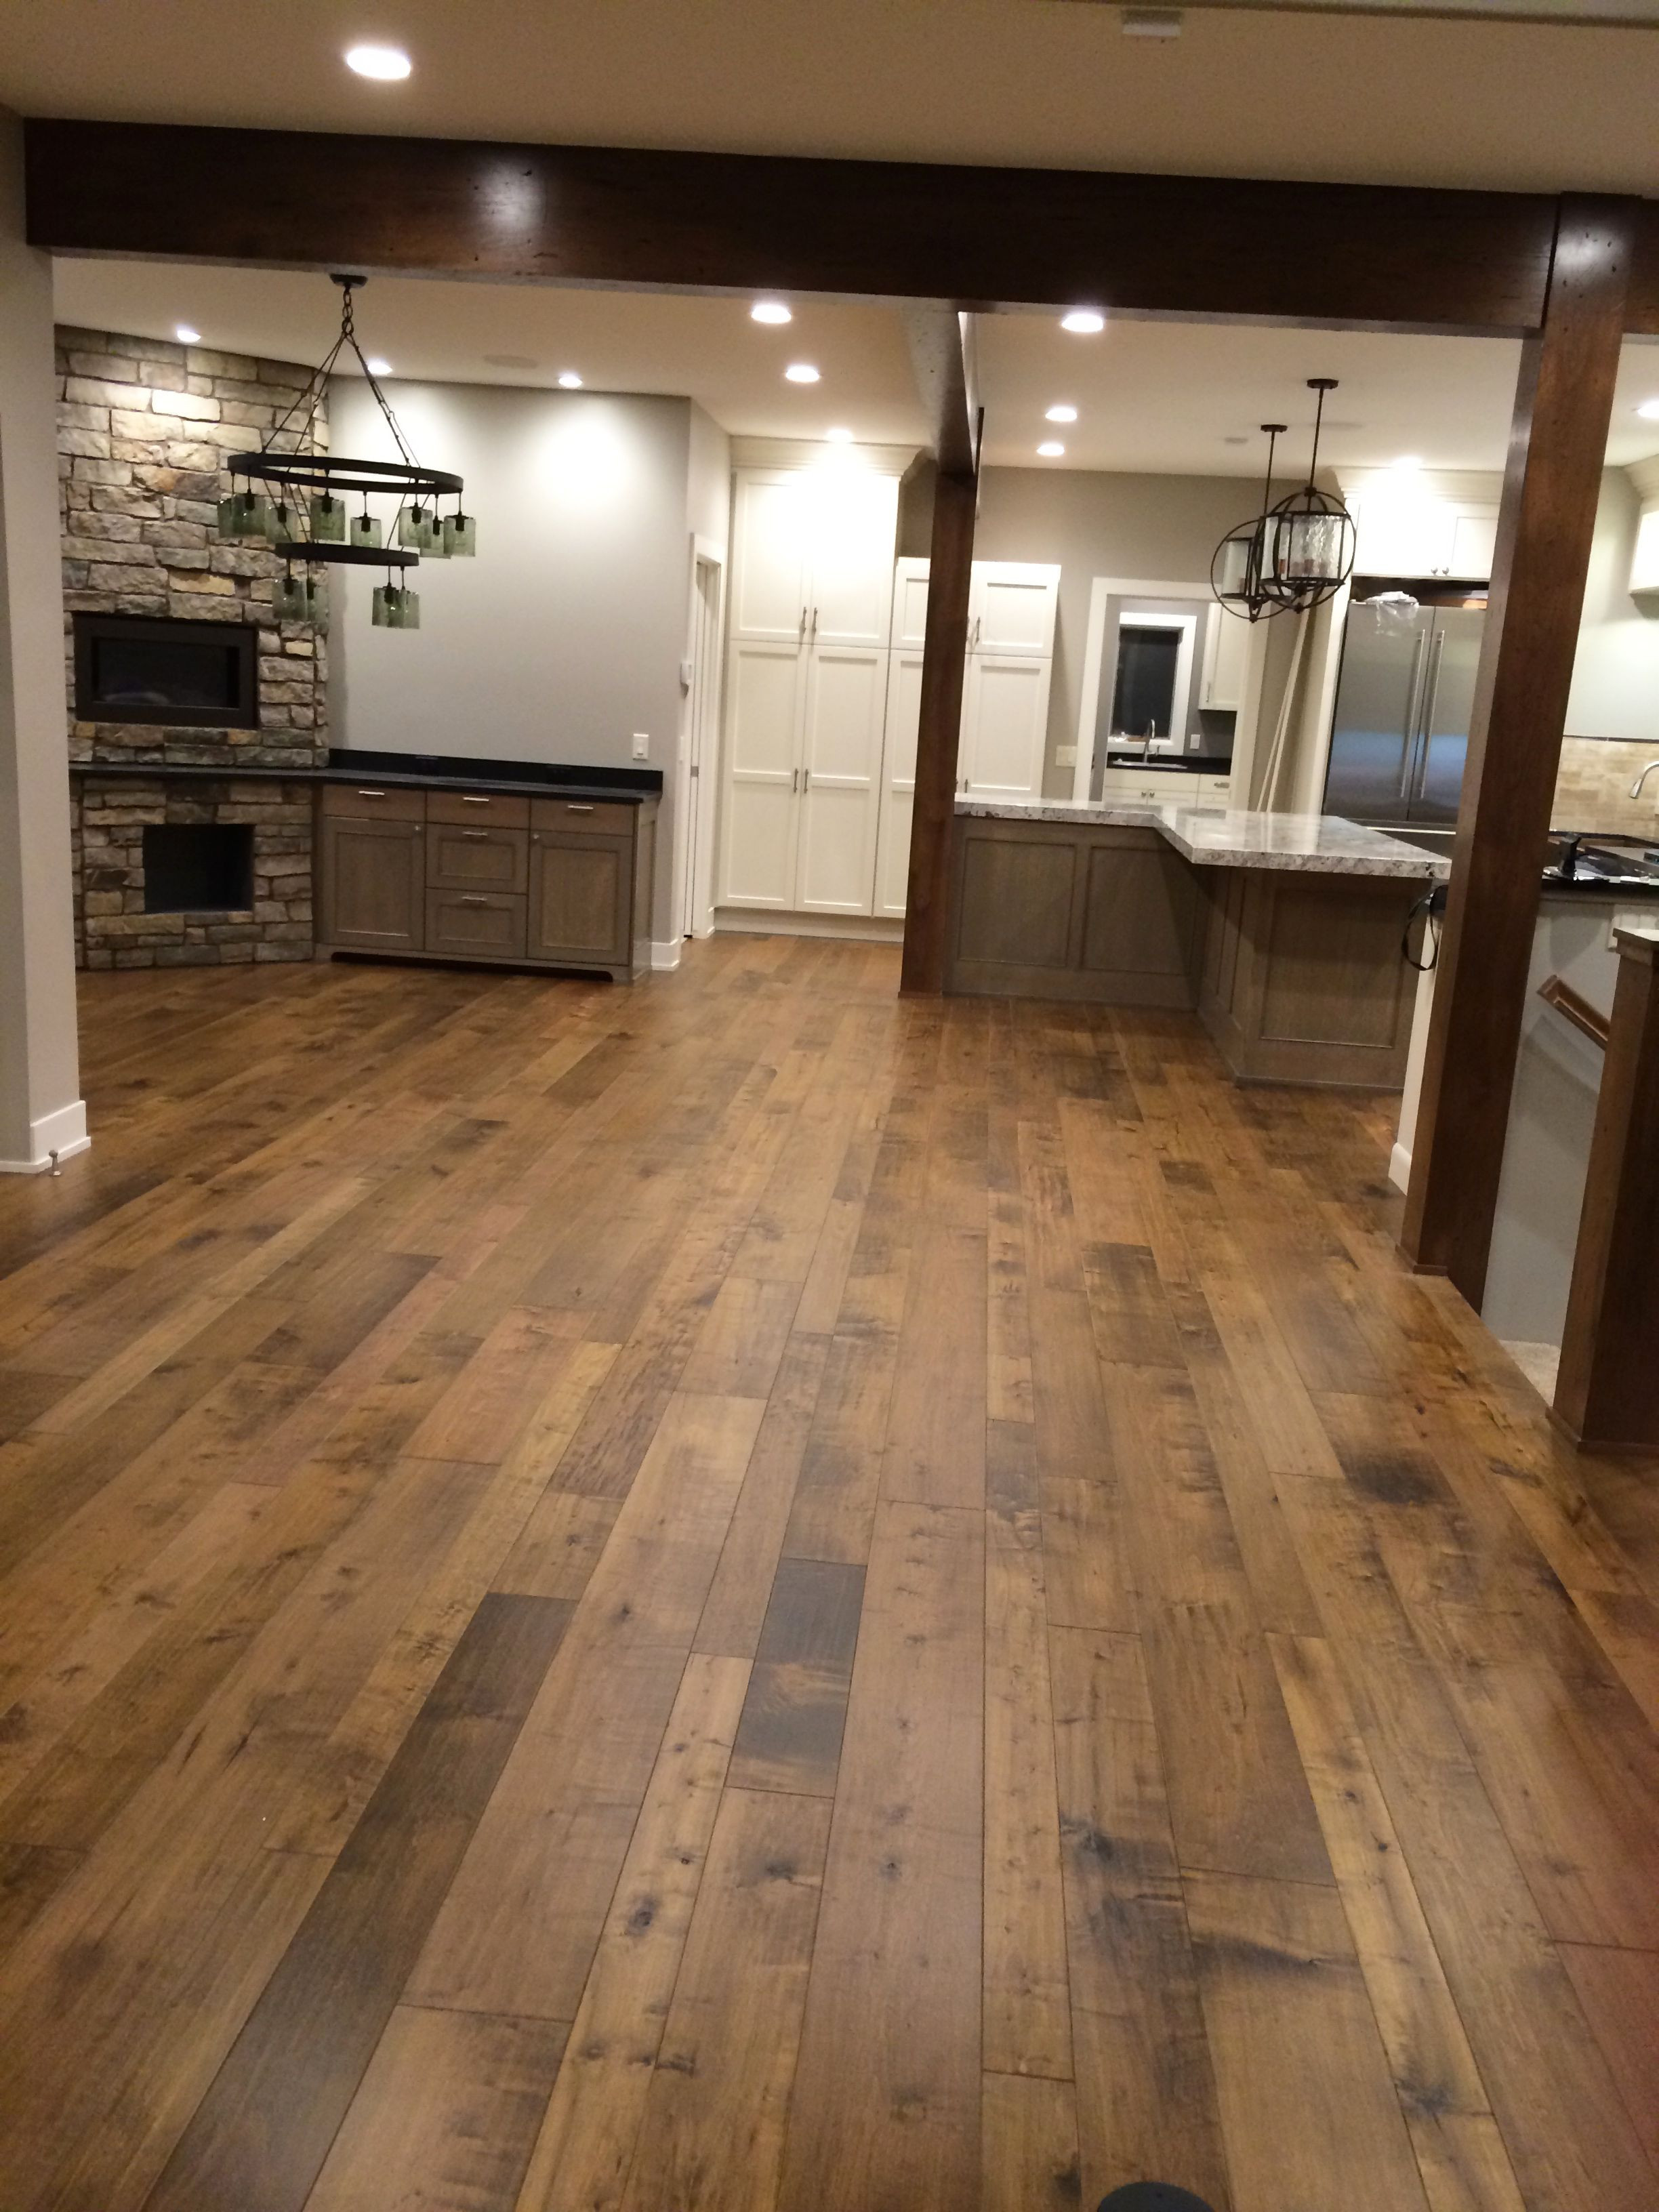 preverco hardwood flooring reviews of birch hardwood flooring lumber liquidators oak hand scraped wagon throughout floor in their chantilly birch hardwood flooring monterey hardwood collection pinterest